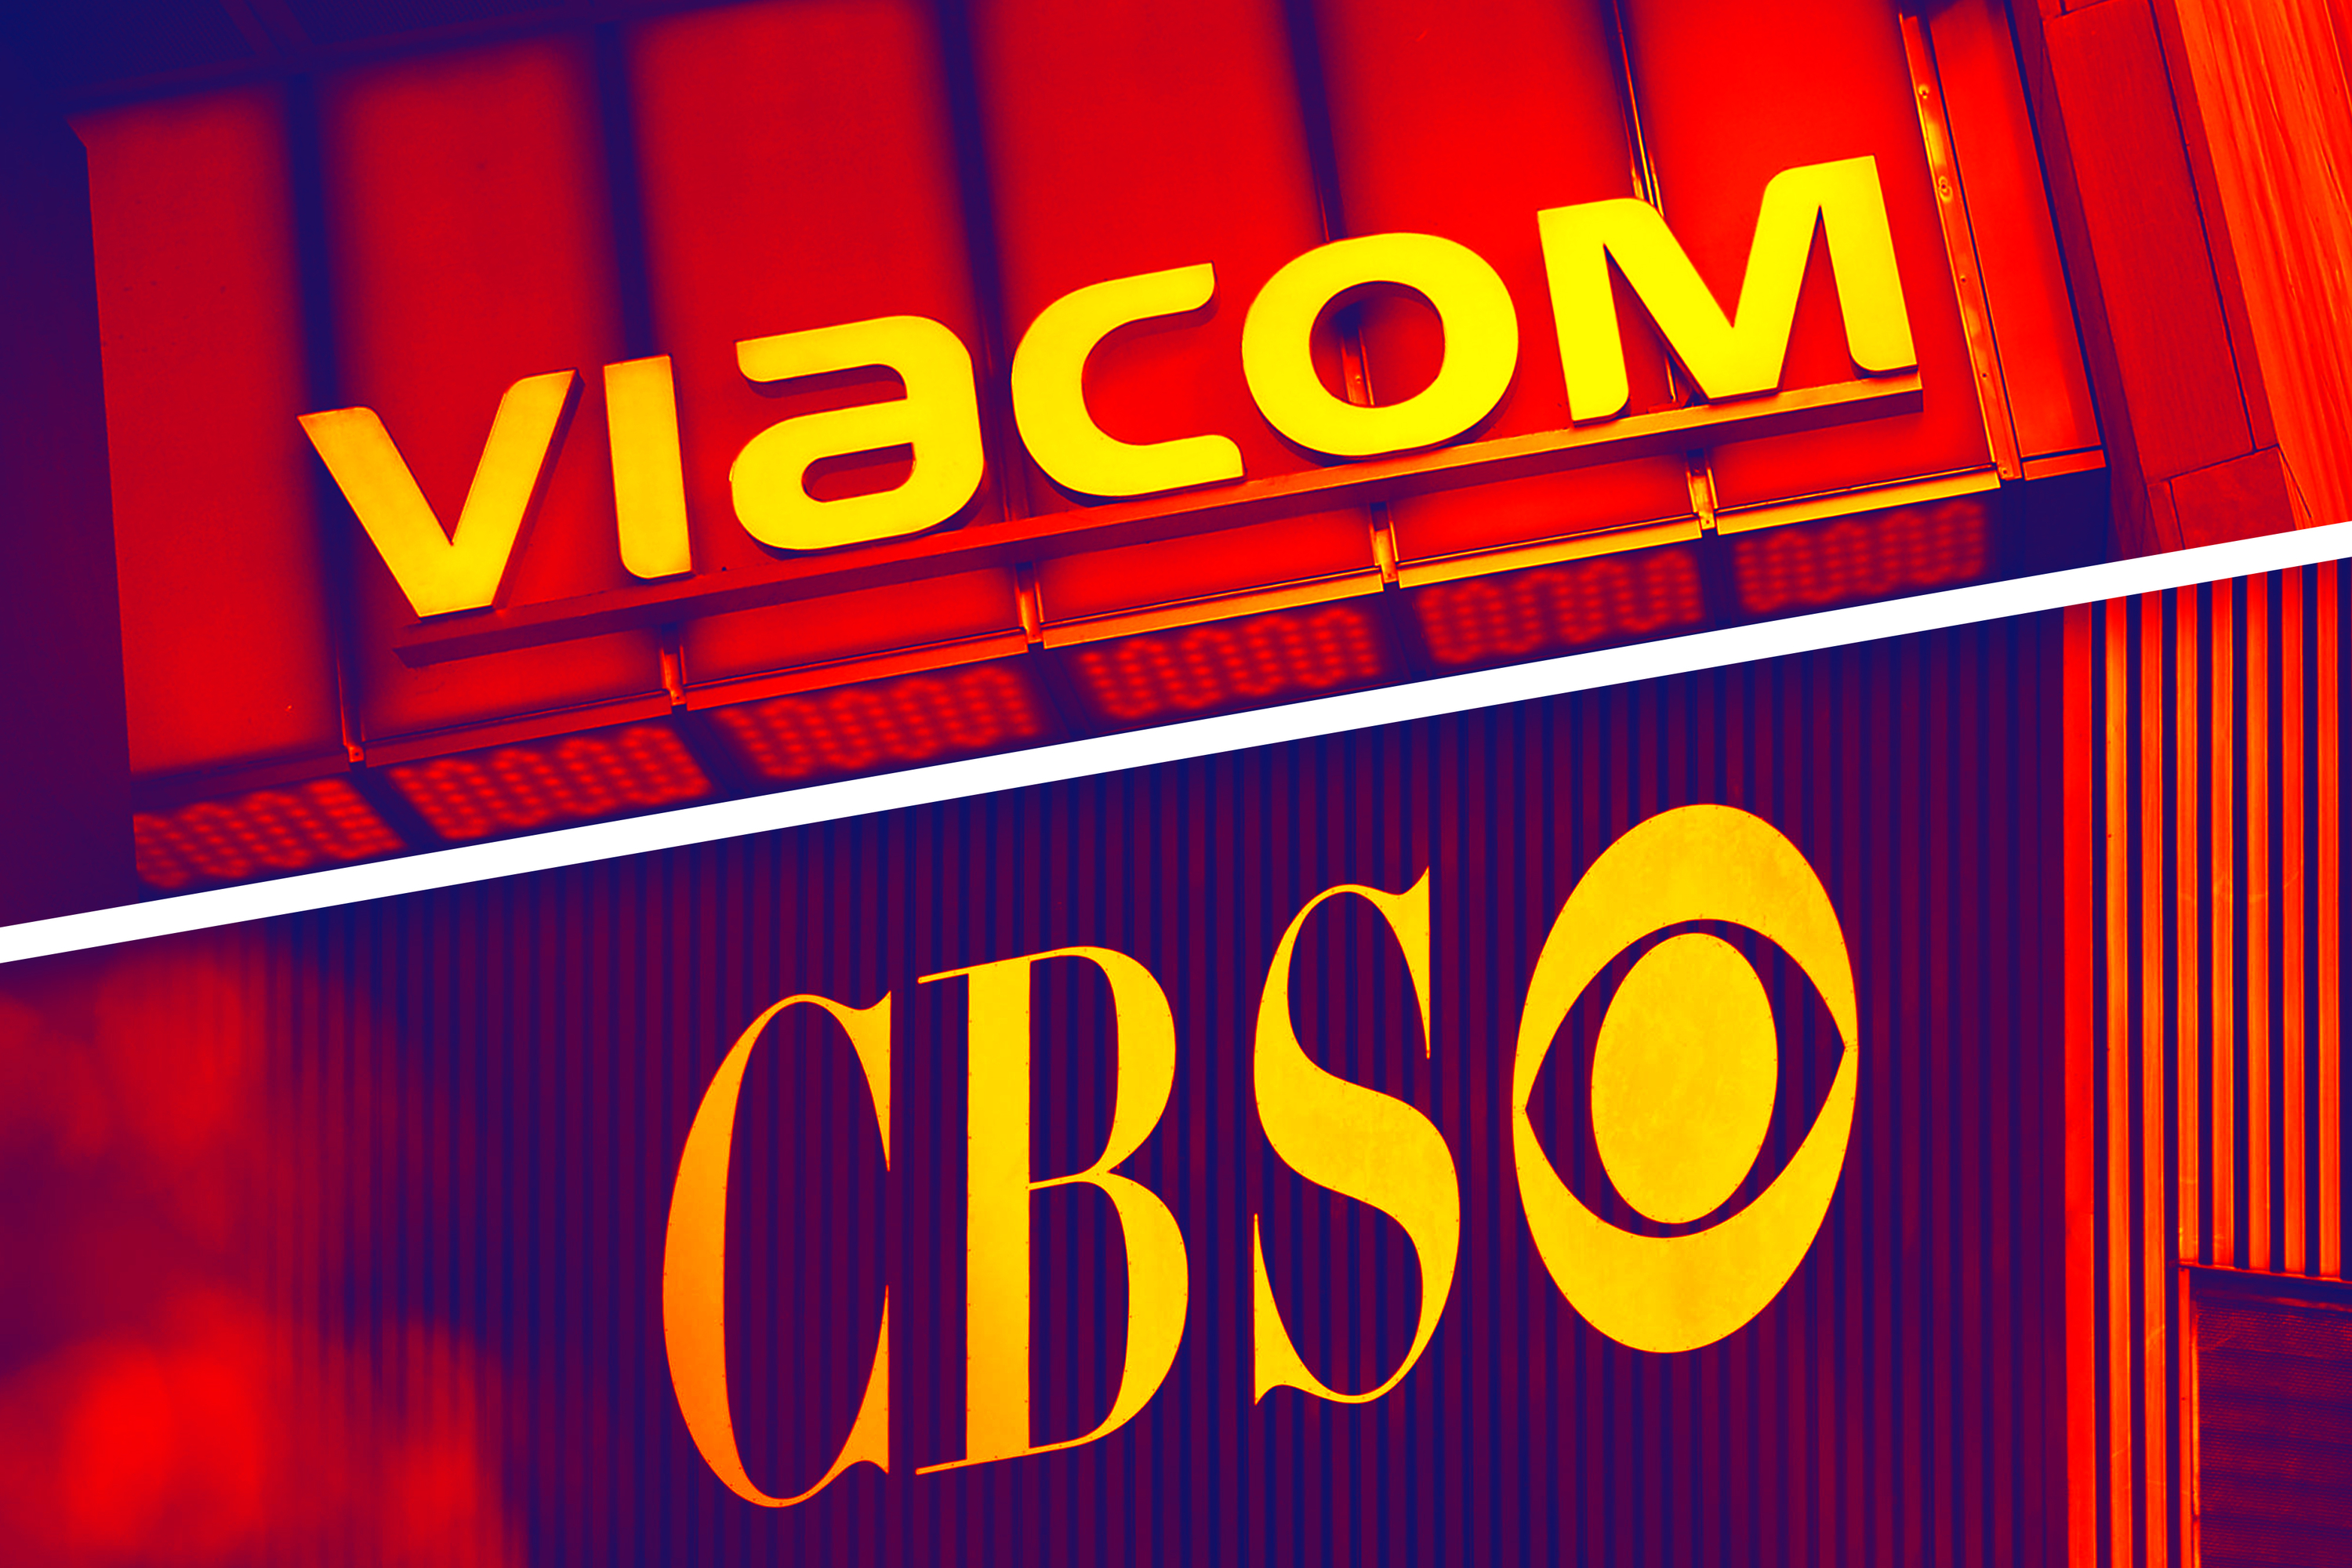 CBS and Viacom are reuniting, and the new name will be ViacomCBS